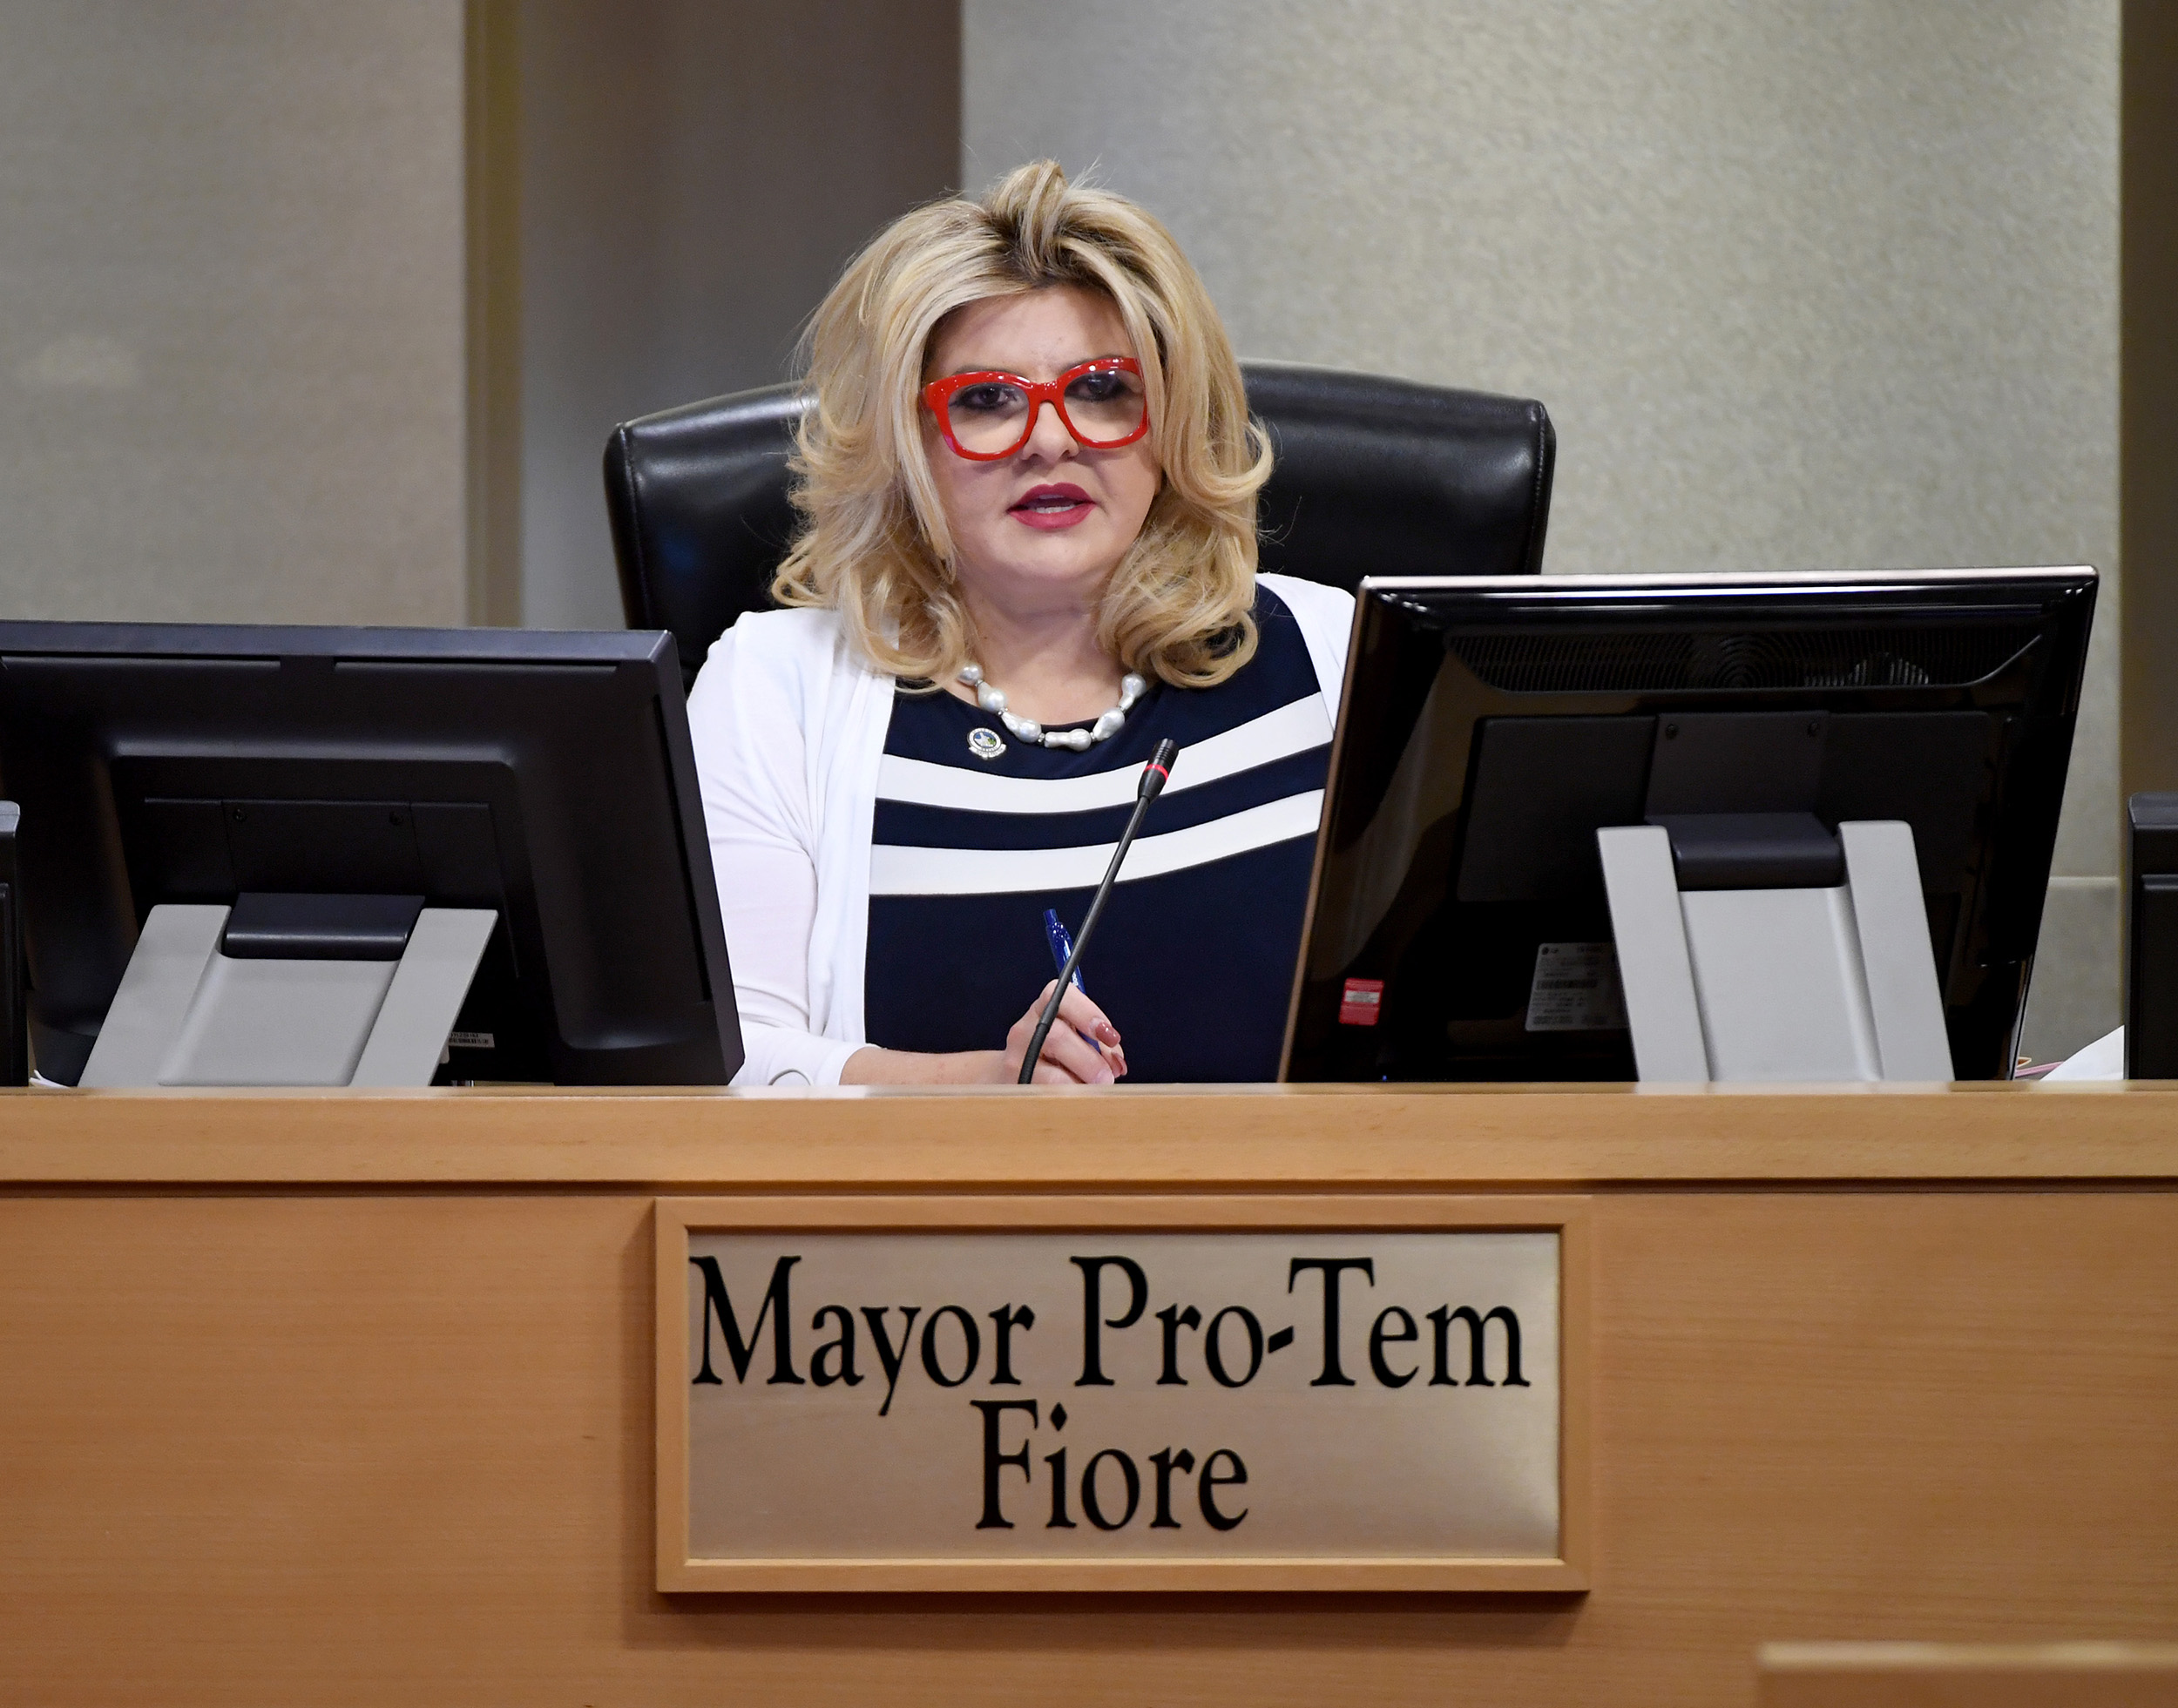 Mayor Pro Tem Michele Fiore speaks during a city council meeting held amid the coronavirus pandemic at City Hall in Las Vegas, Nevada, on May 20.